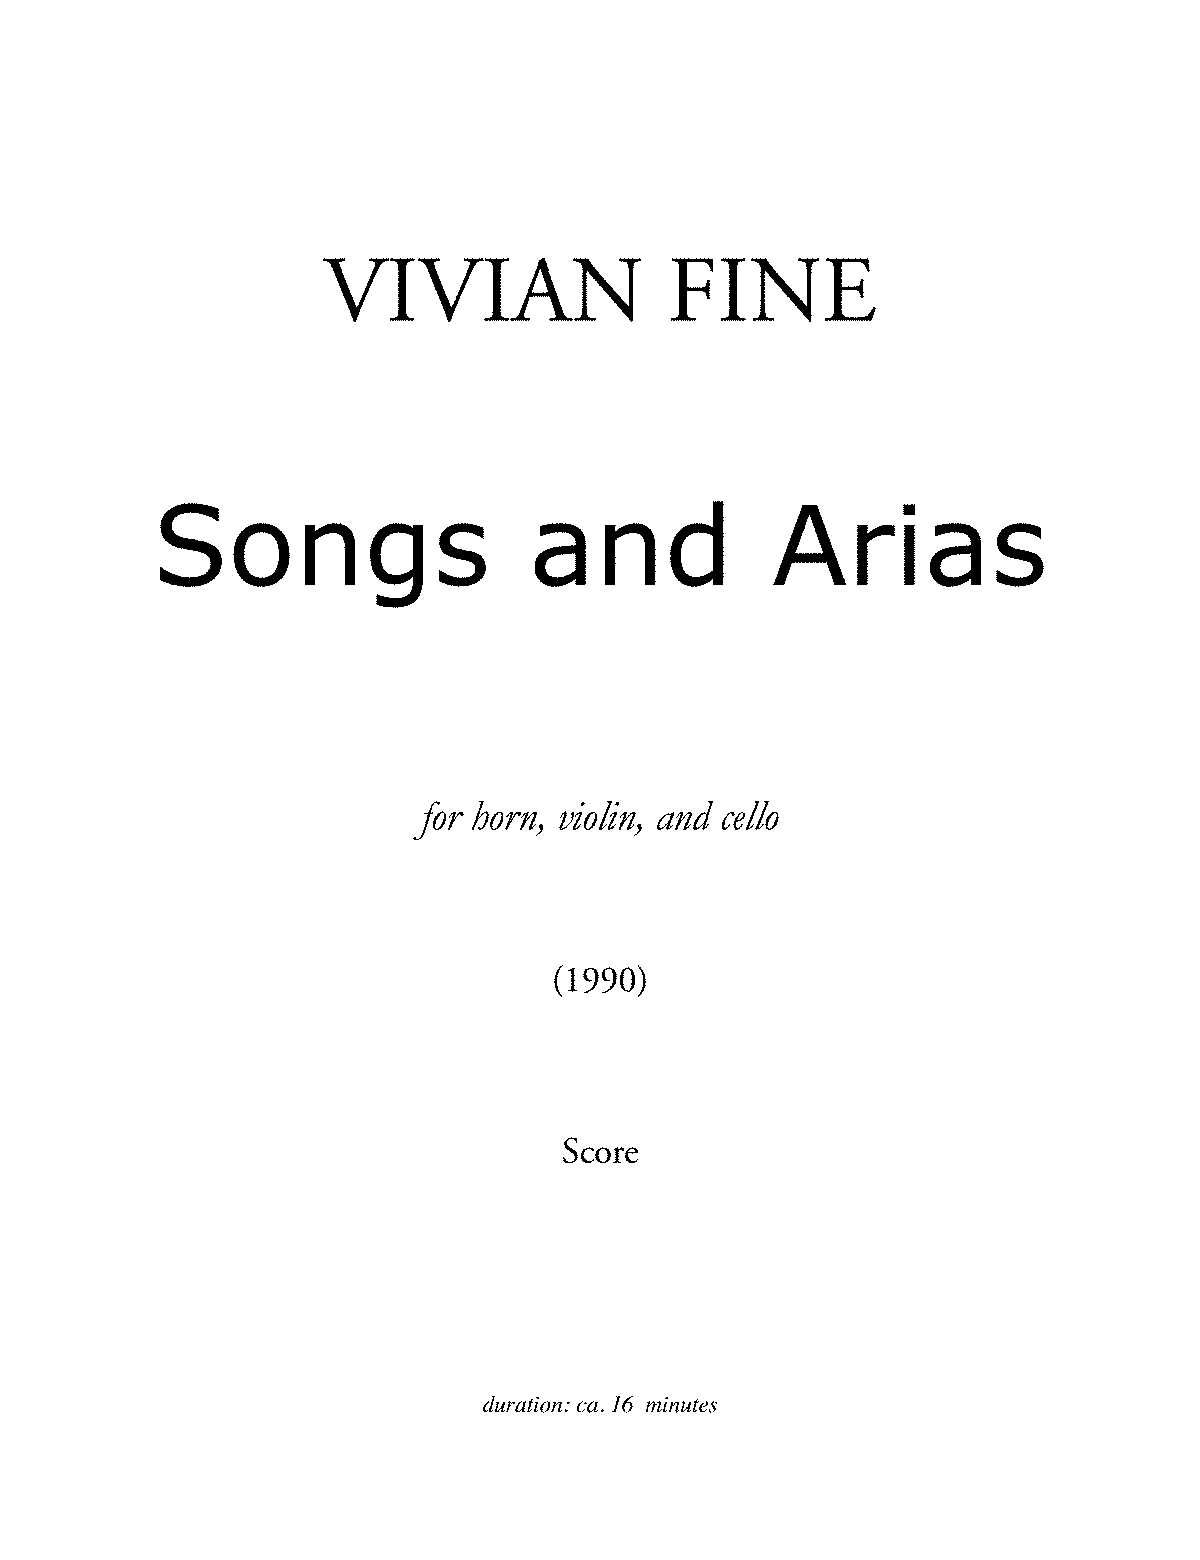 PMLP213527-Songs and Arias score transposed final.pdf